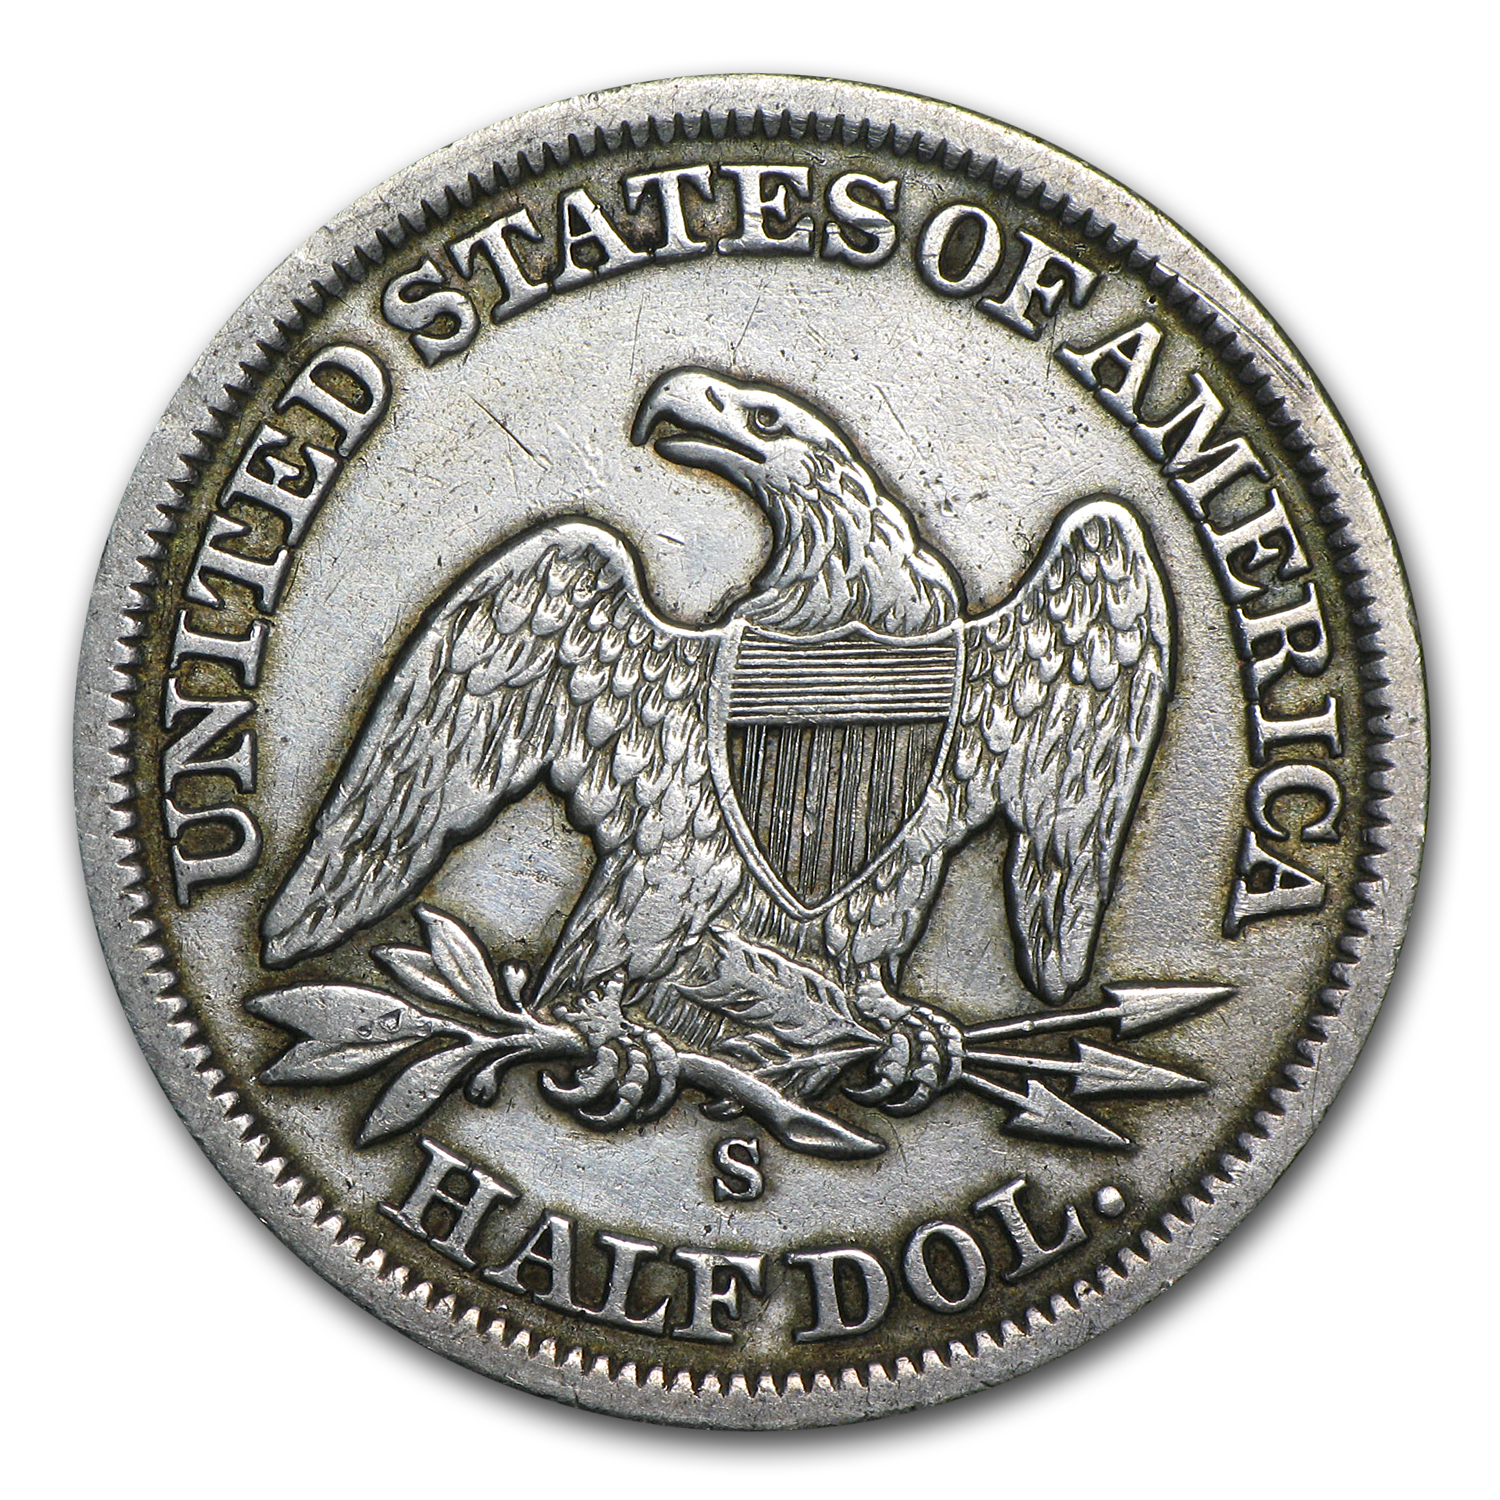 1860-S Extra Fine Liberty Seated Half Dollar - Details